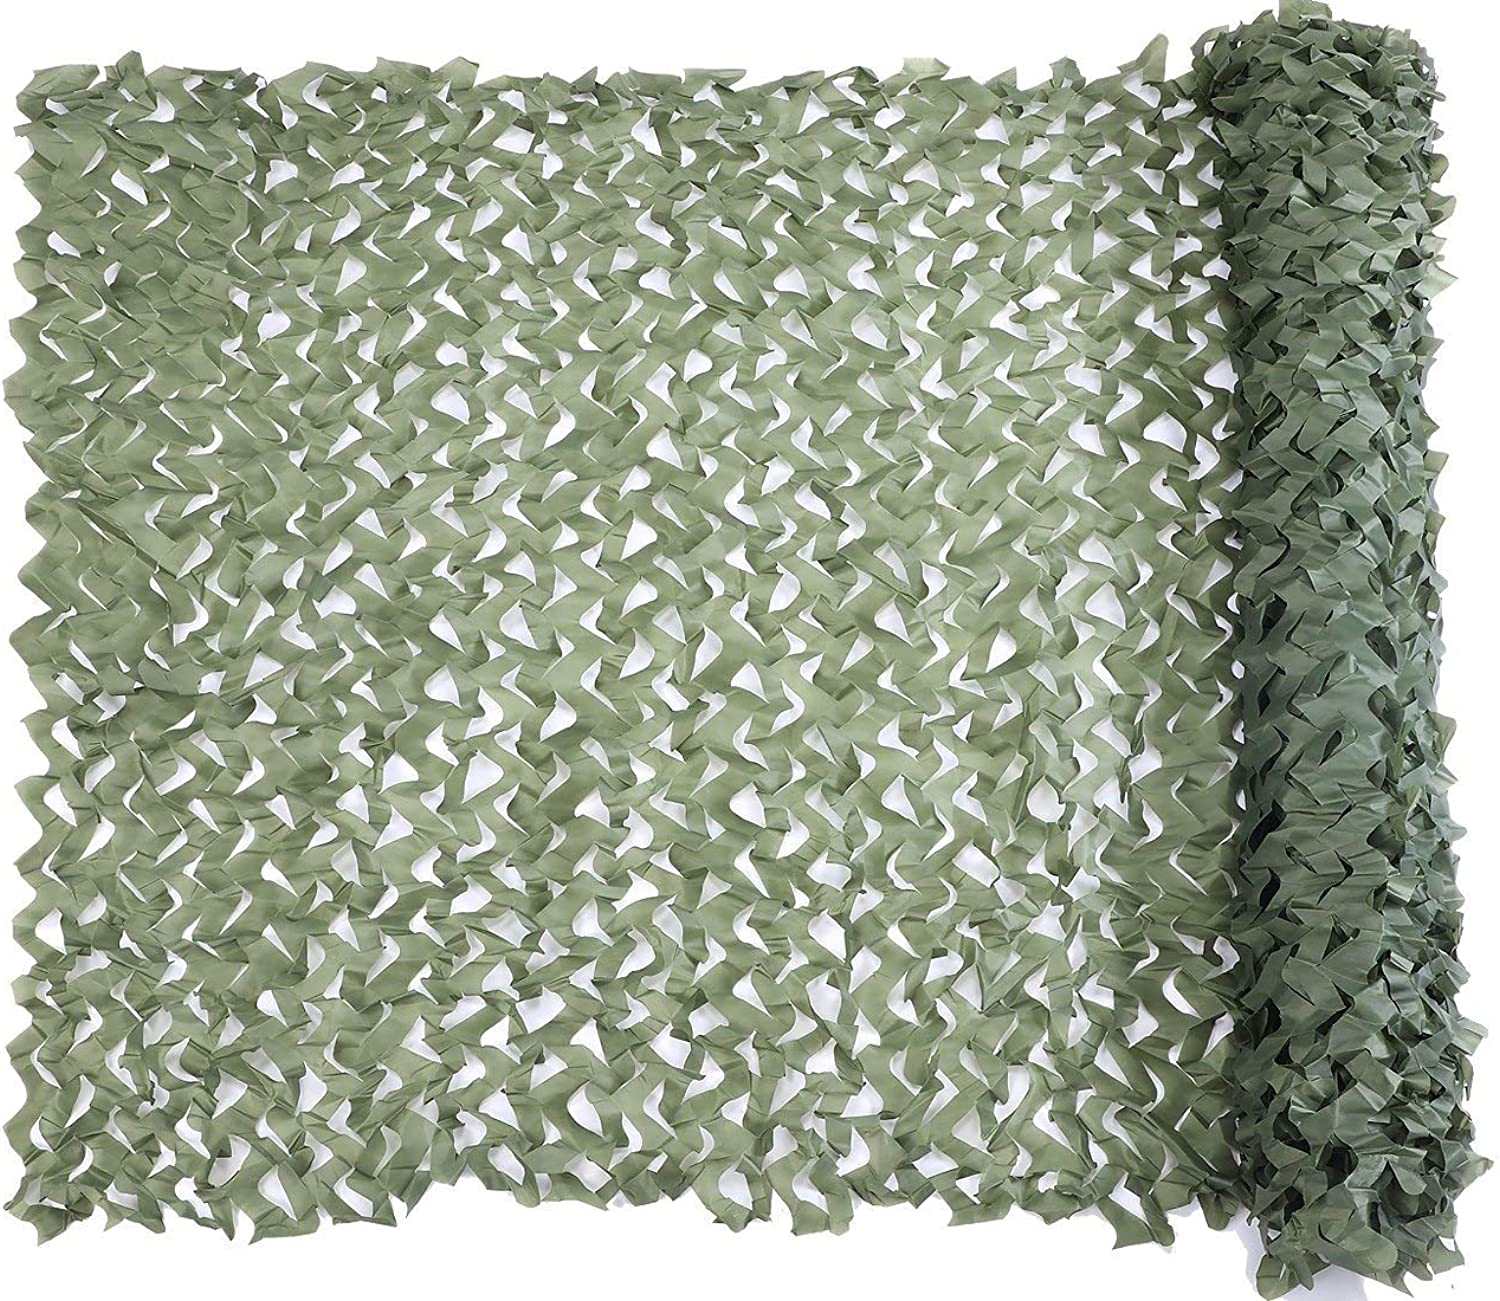 Camouflage Netting Military Nets Lightweight Durable Sunshade Decoration Hunting Blind Shooting Camo Net (color   Green, Size   3x3m)